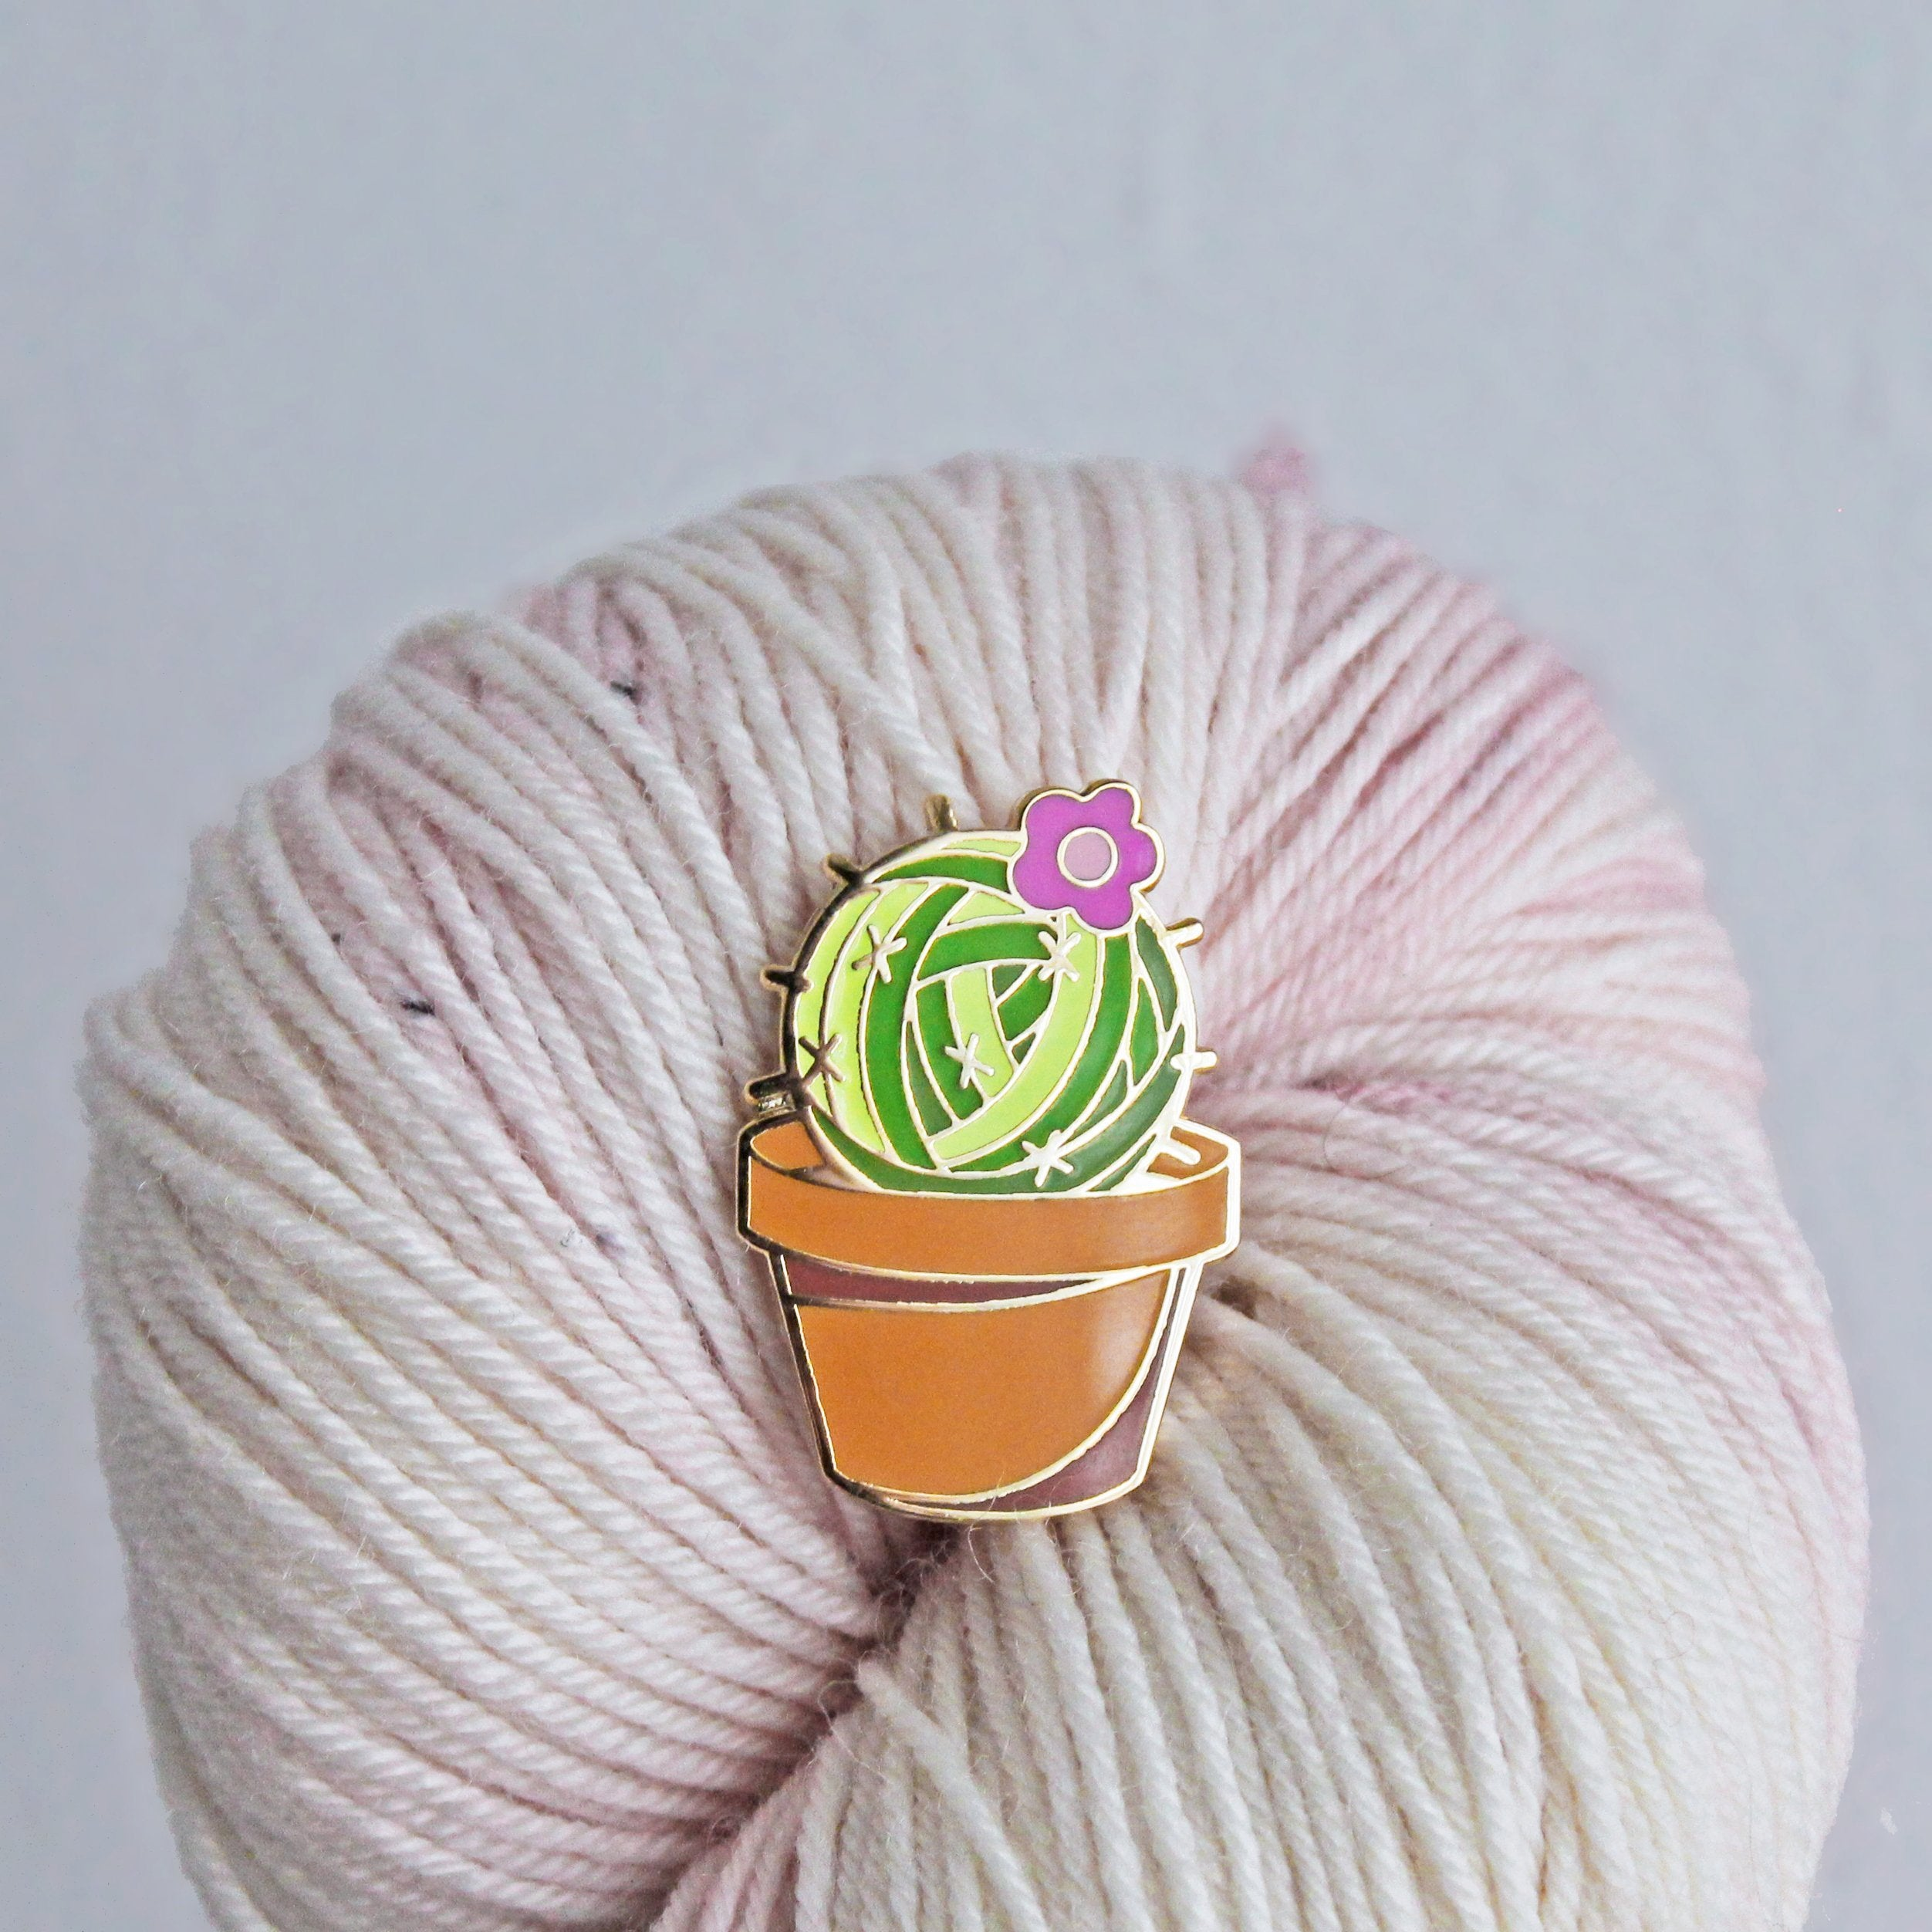 Prickly Yarn Enamel Pin